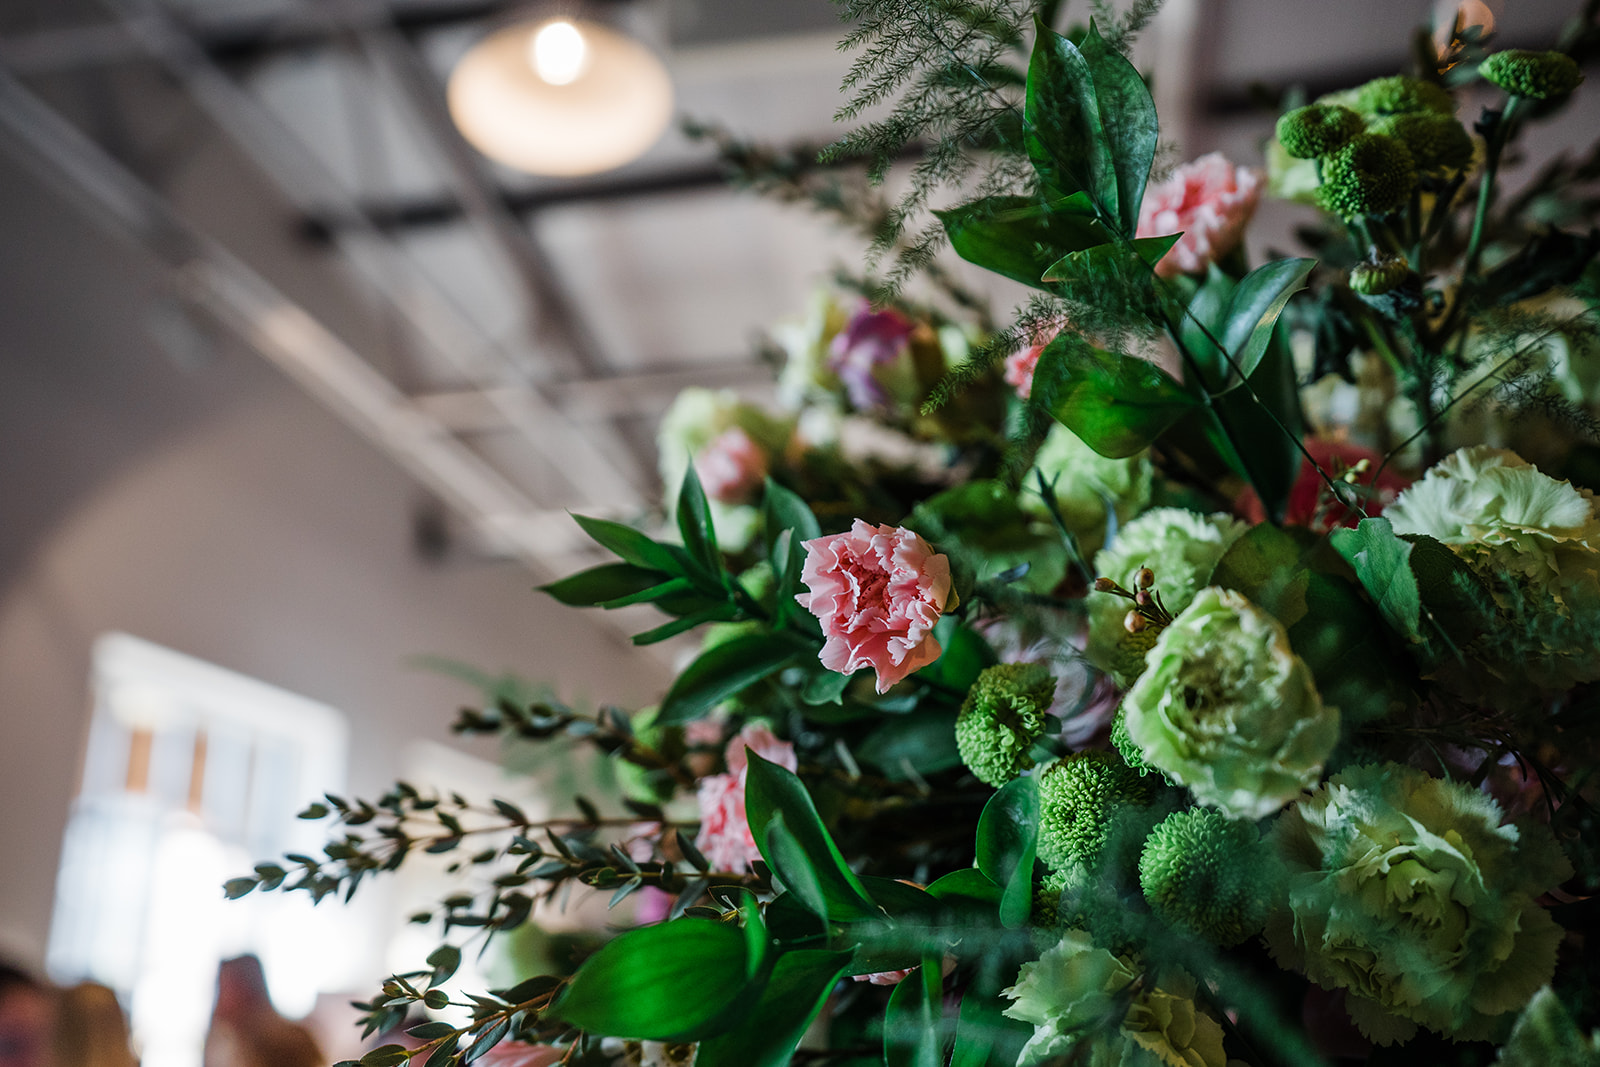 Internal photrograph of alternative wedding venue Birmingham Fazeley Studios showing a green and pink floral arrangement against industrial style ceiling